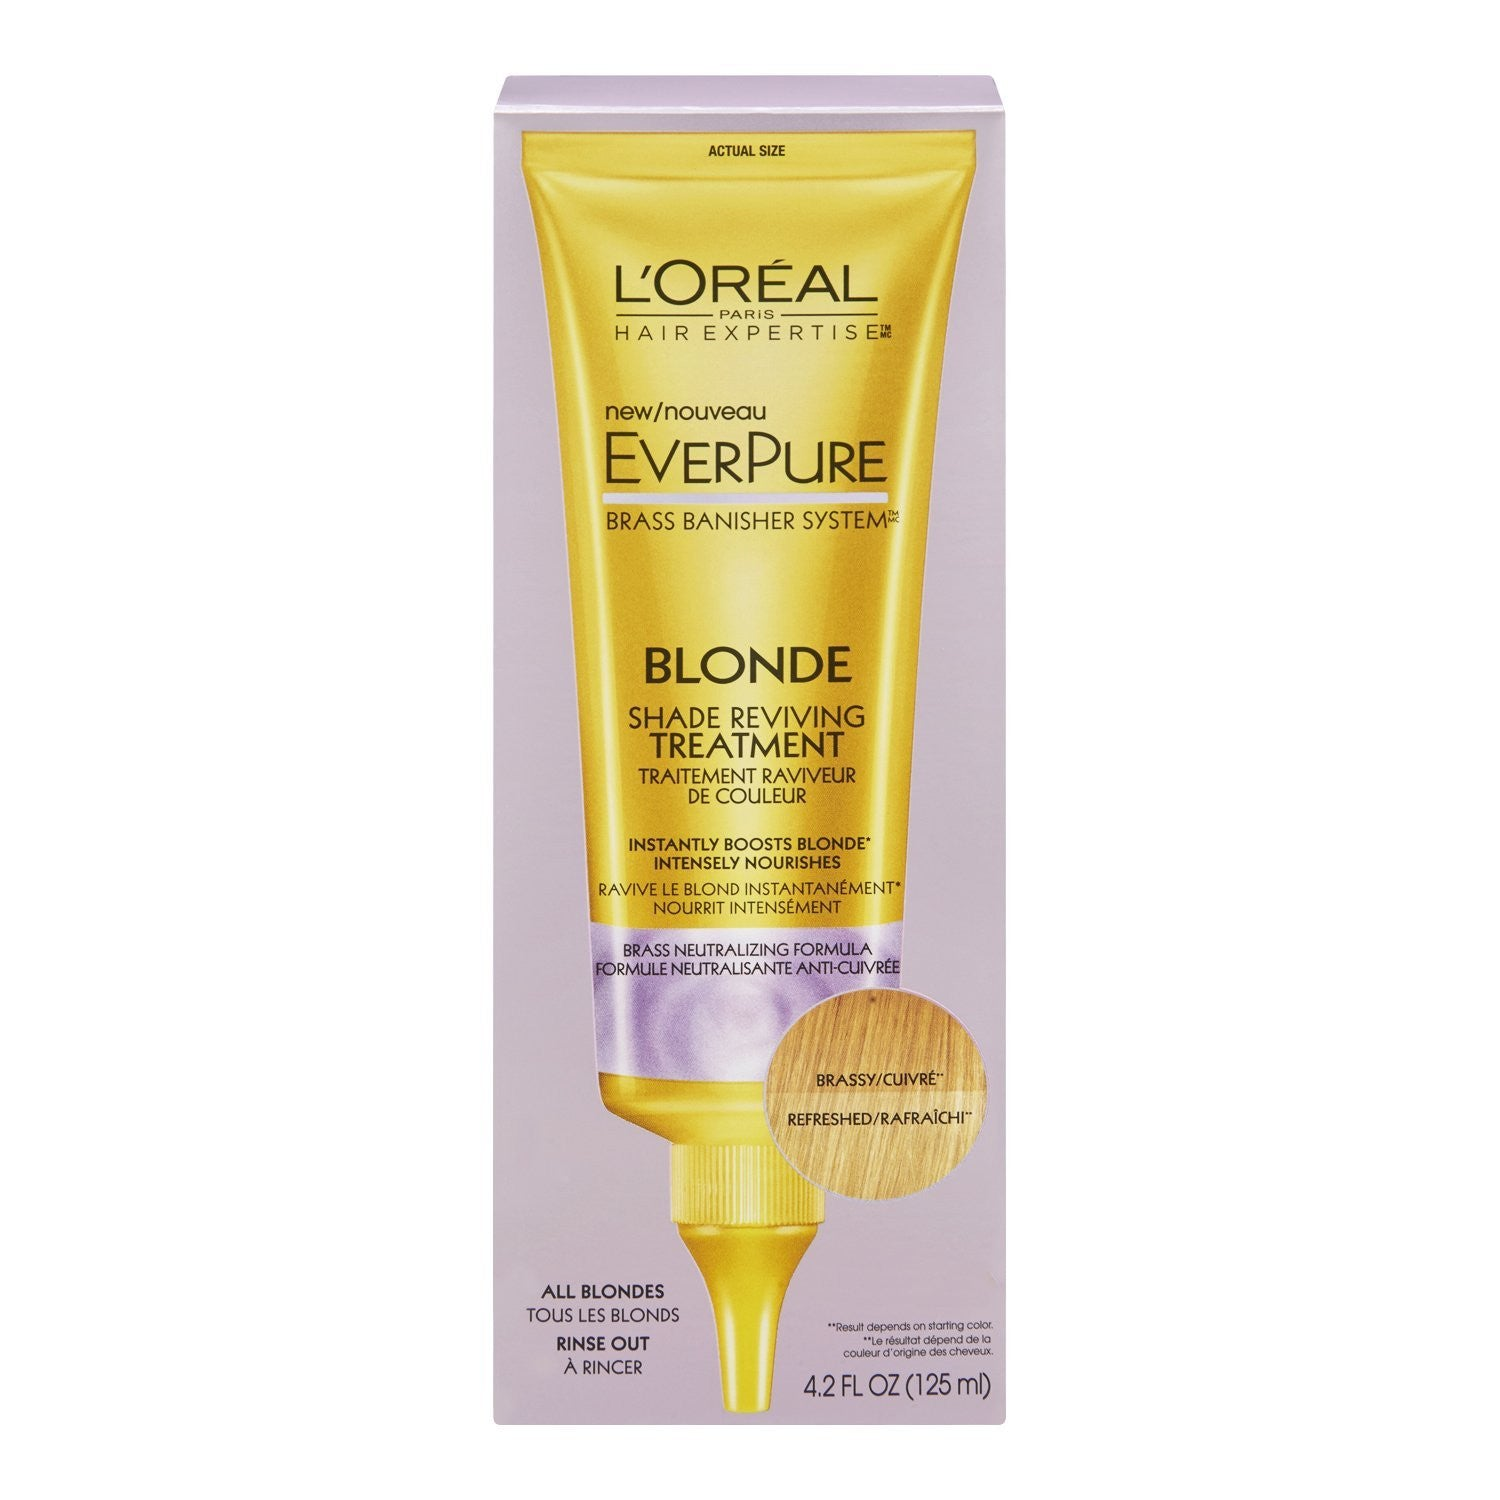 WHOLESALE LOREAL EVERPURE BLONDE SHADE REVIVING TREATMENT 4.2 OZ.  - 48 PIECE LOT